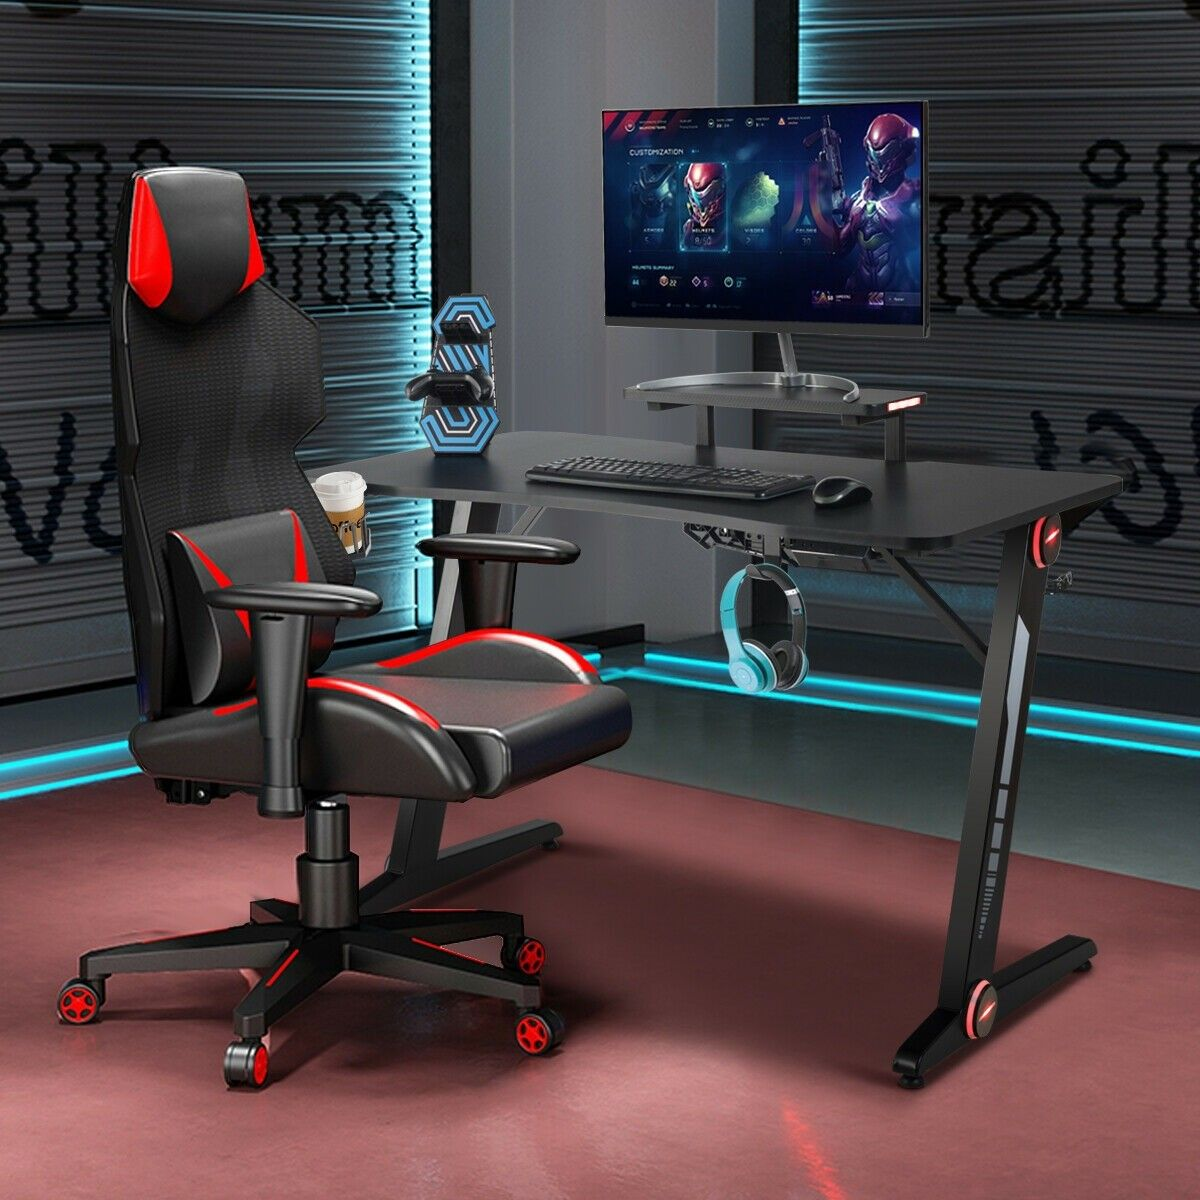 Gaming Desk PC Computer Table with RGB Lights in 2020